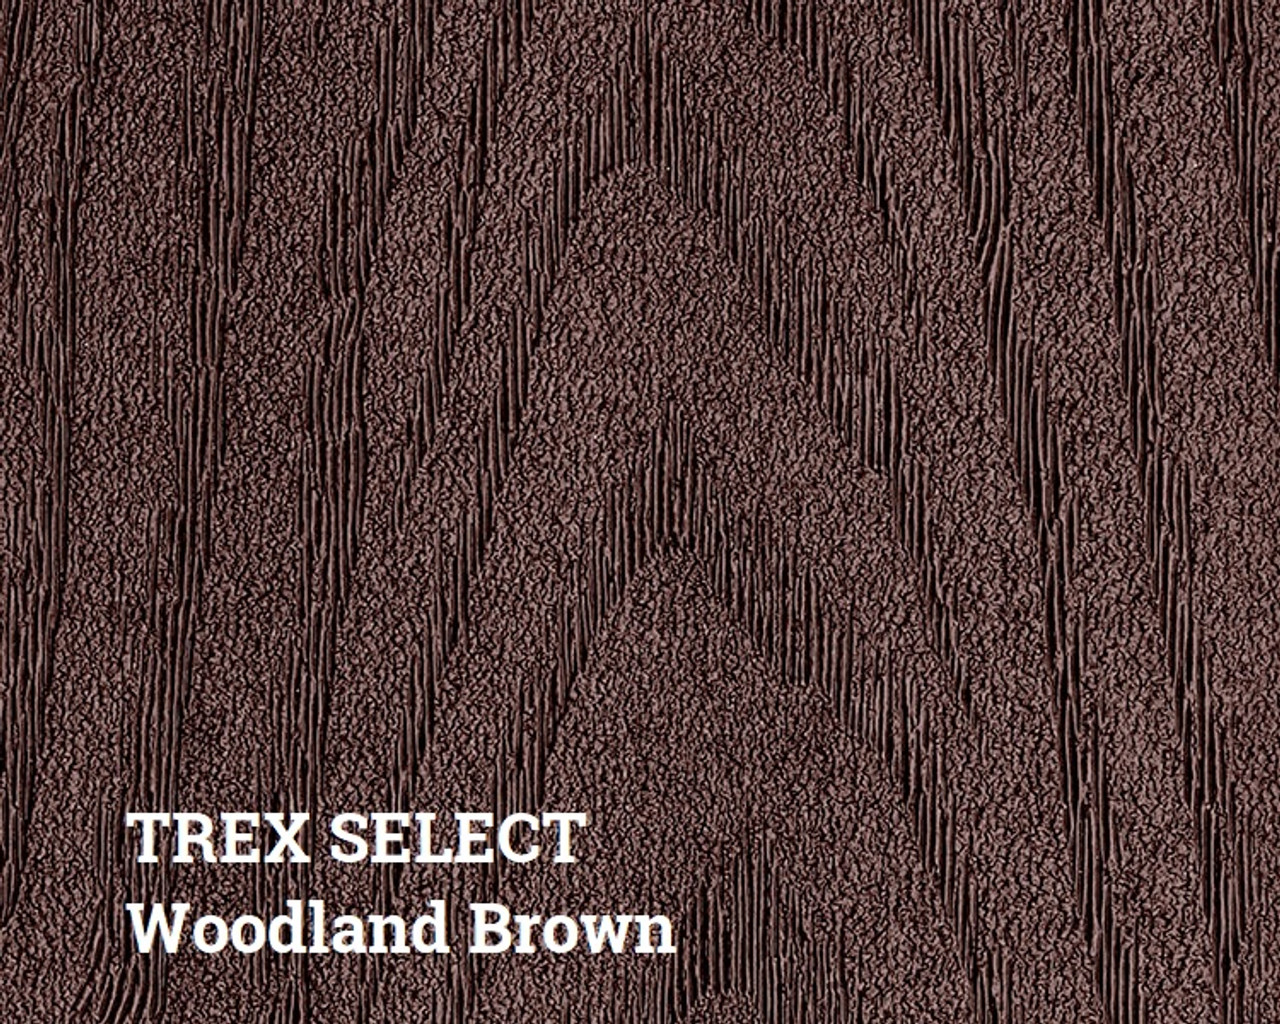 Trex Select Woodland Brown Decking Surface